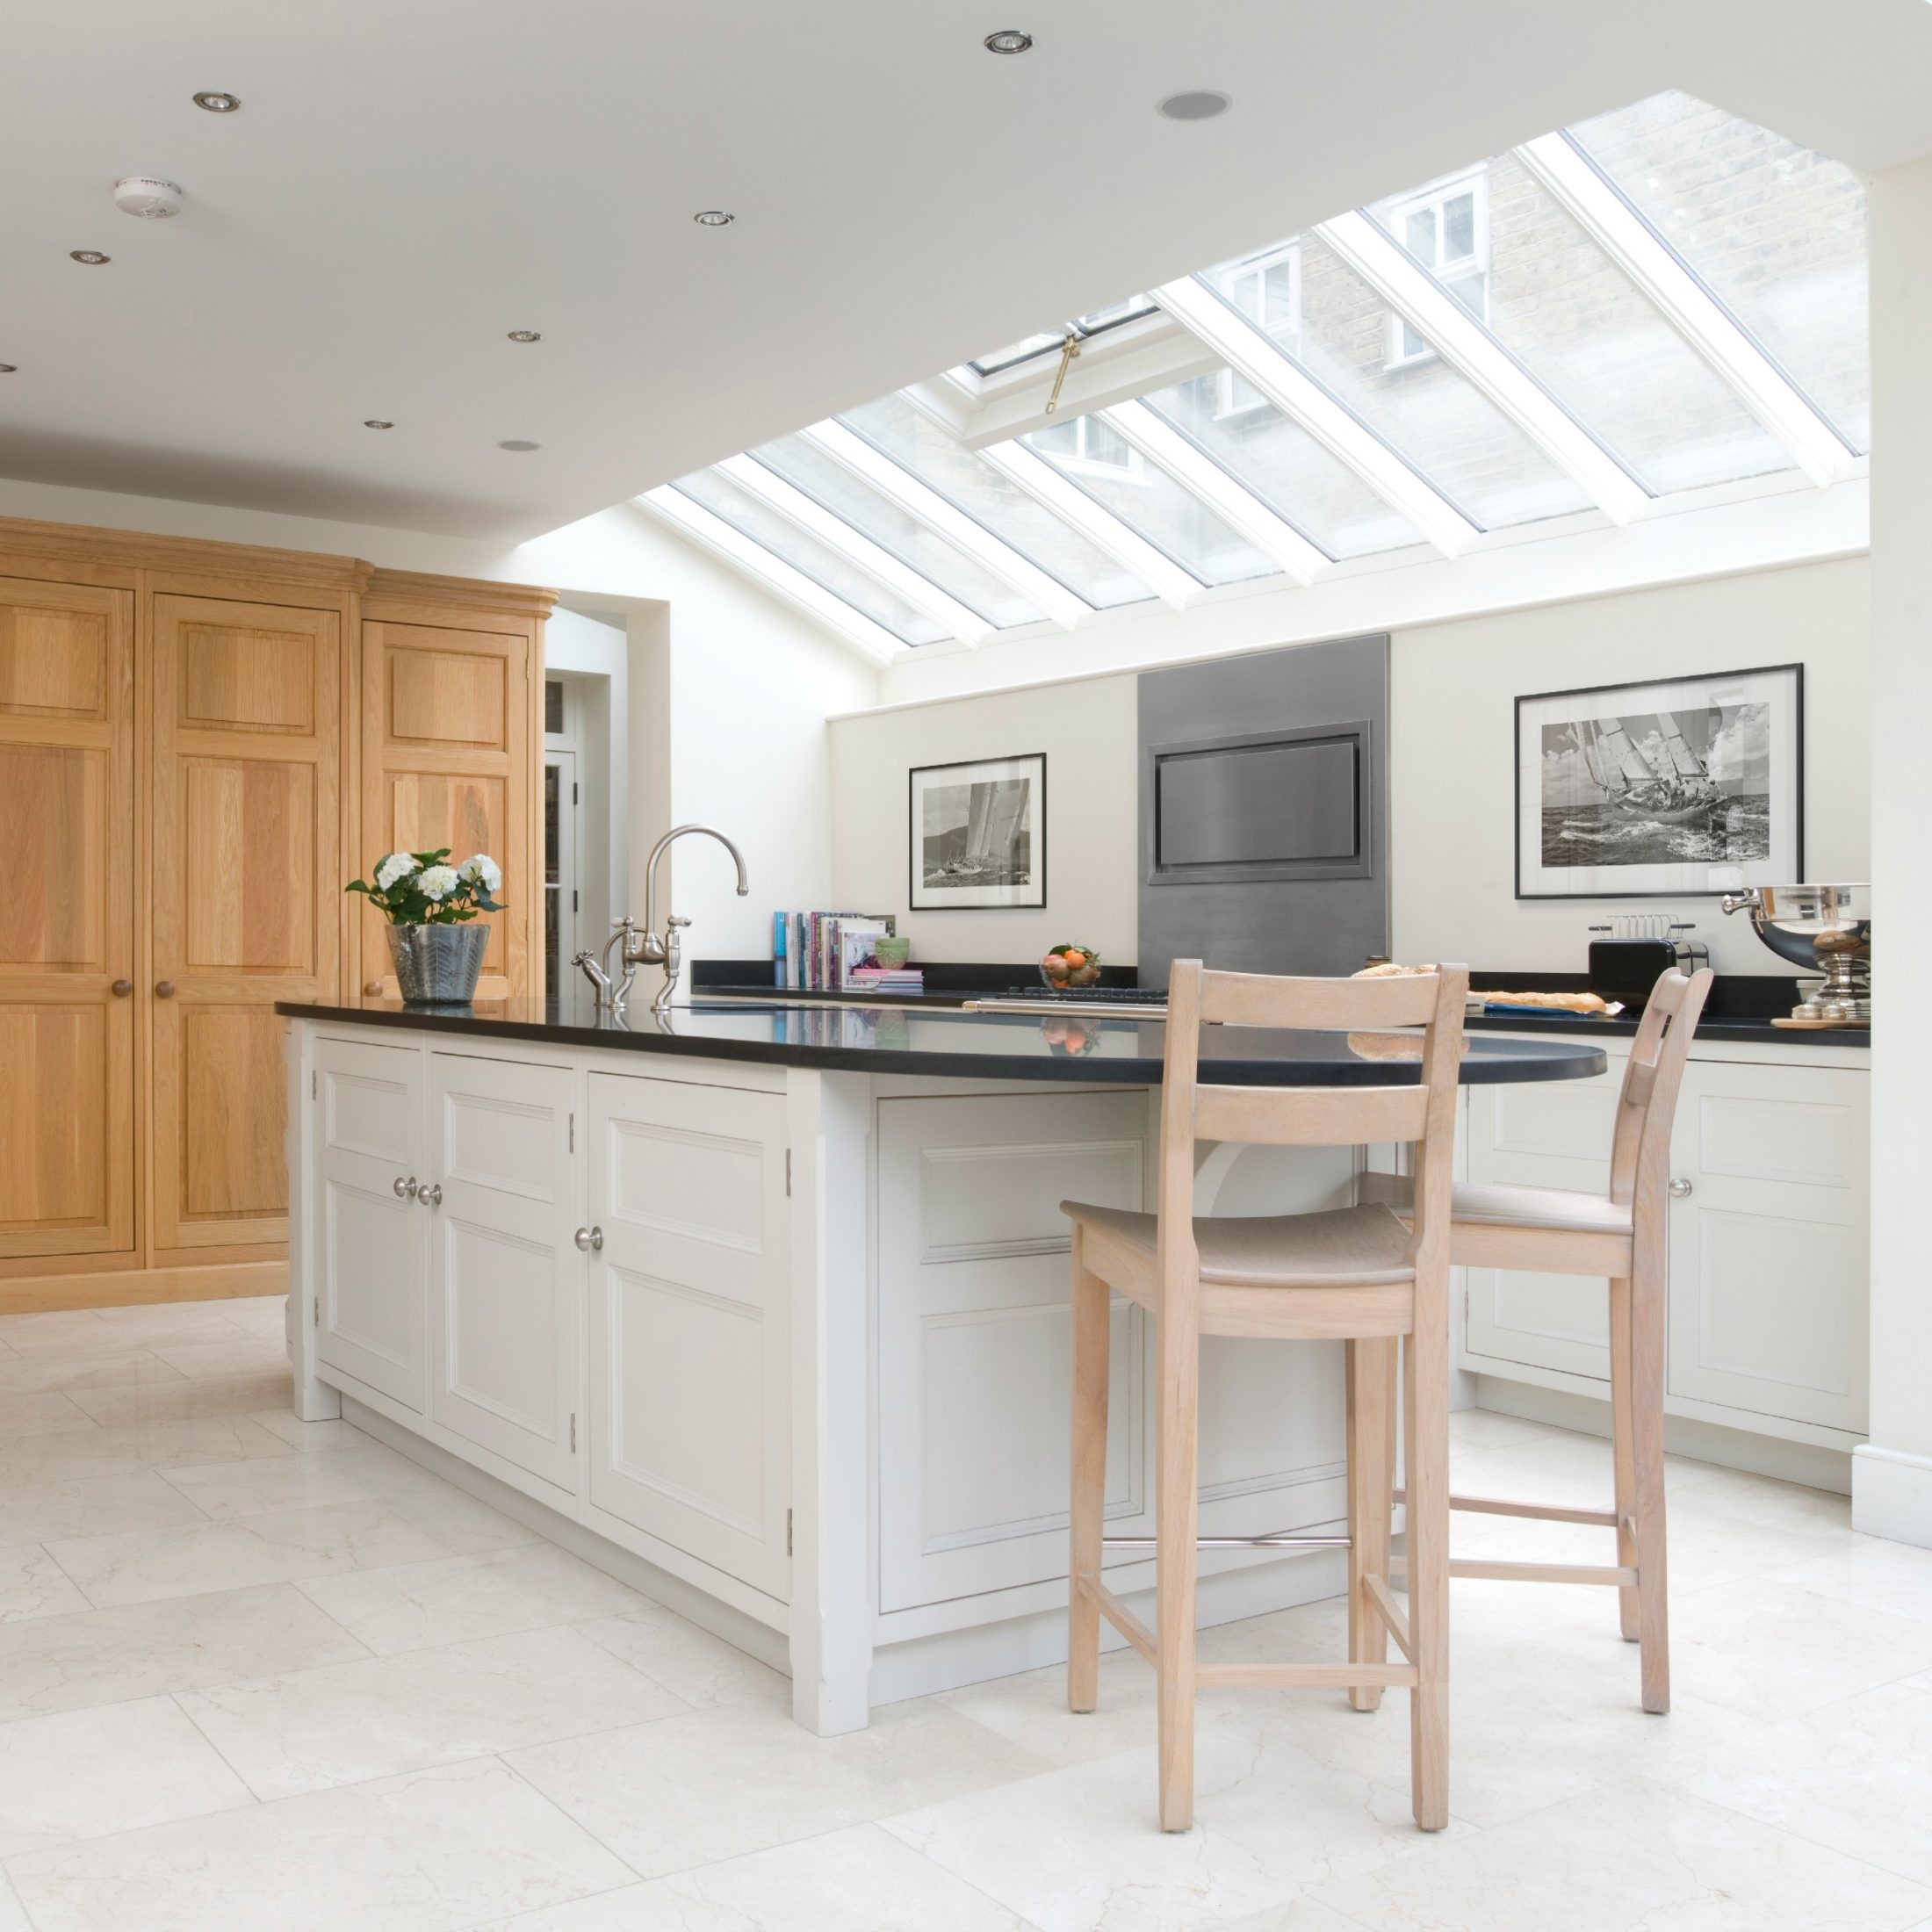 Bespoke Kitchen Design - London Humphrey Munson 1